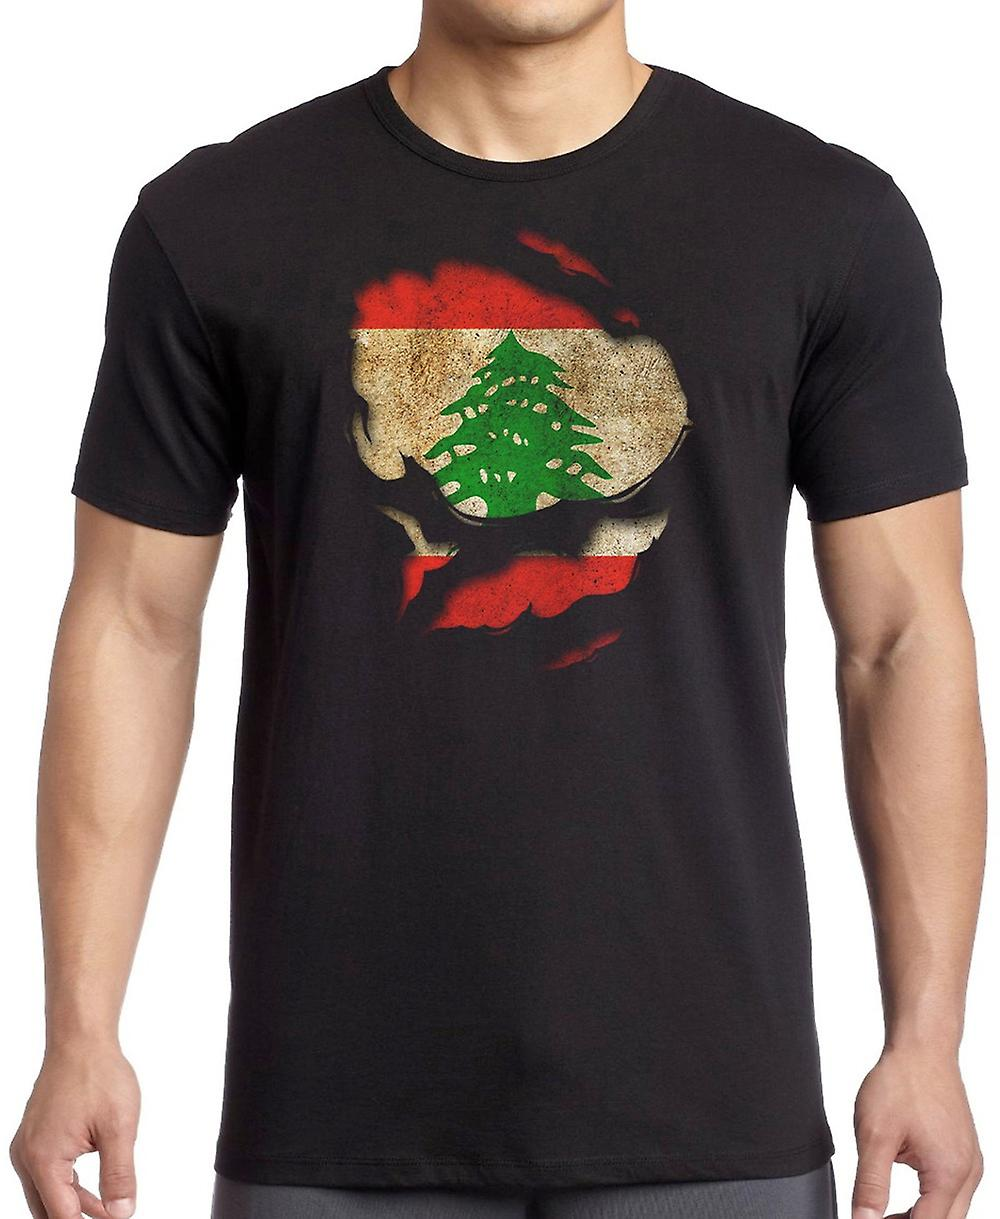 Lebanon_Lebanese Ripped Effect Under Shirt Kids T Shirt